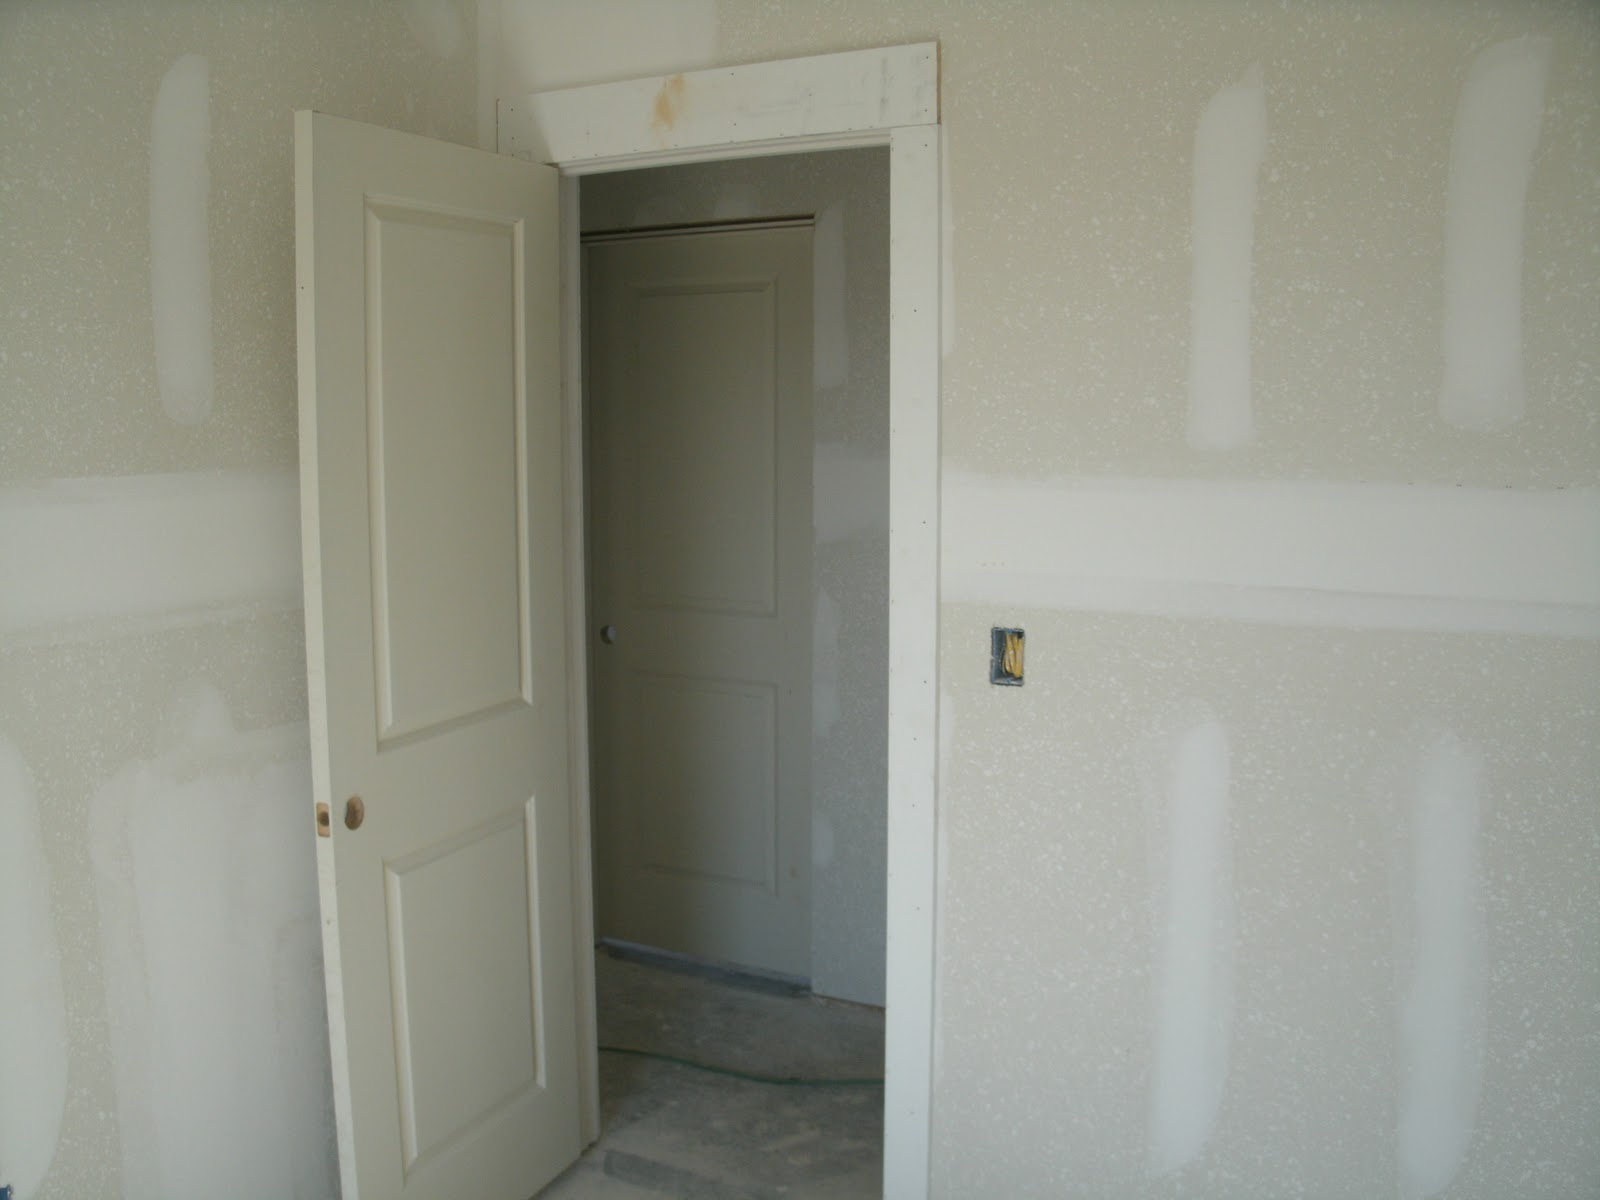 Comhome Interior Trim : example of both the trim and interior doors. I wanted simple wide trim ...